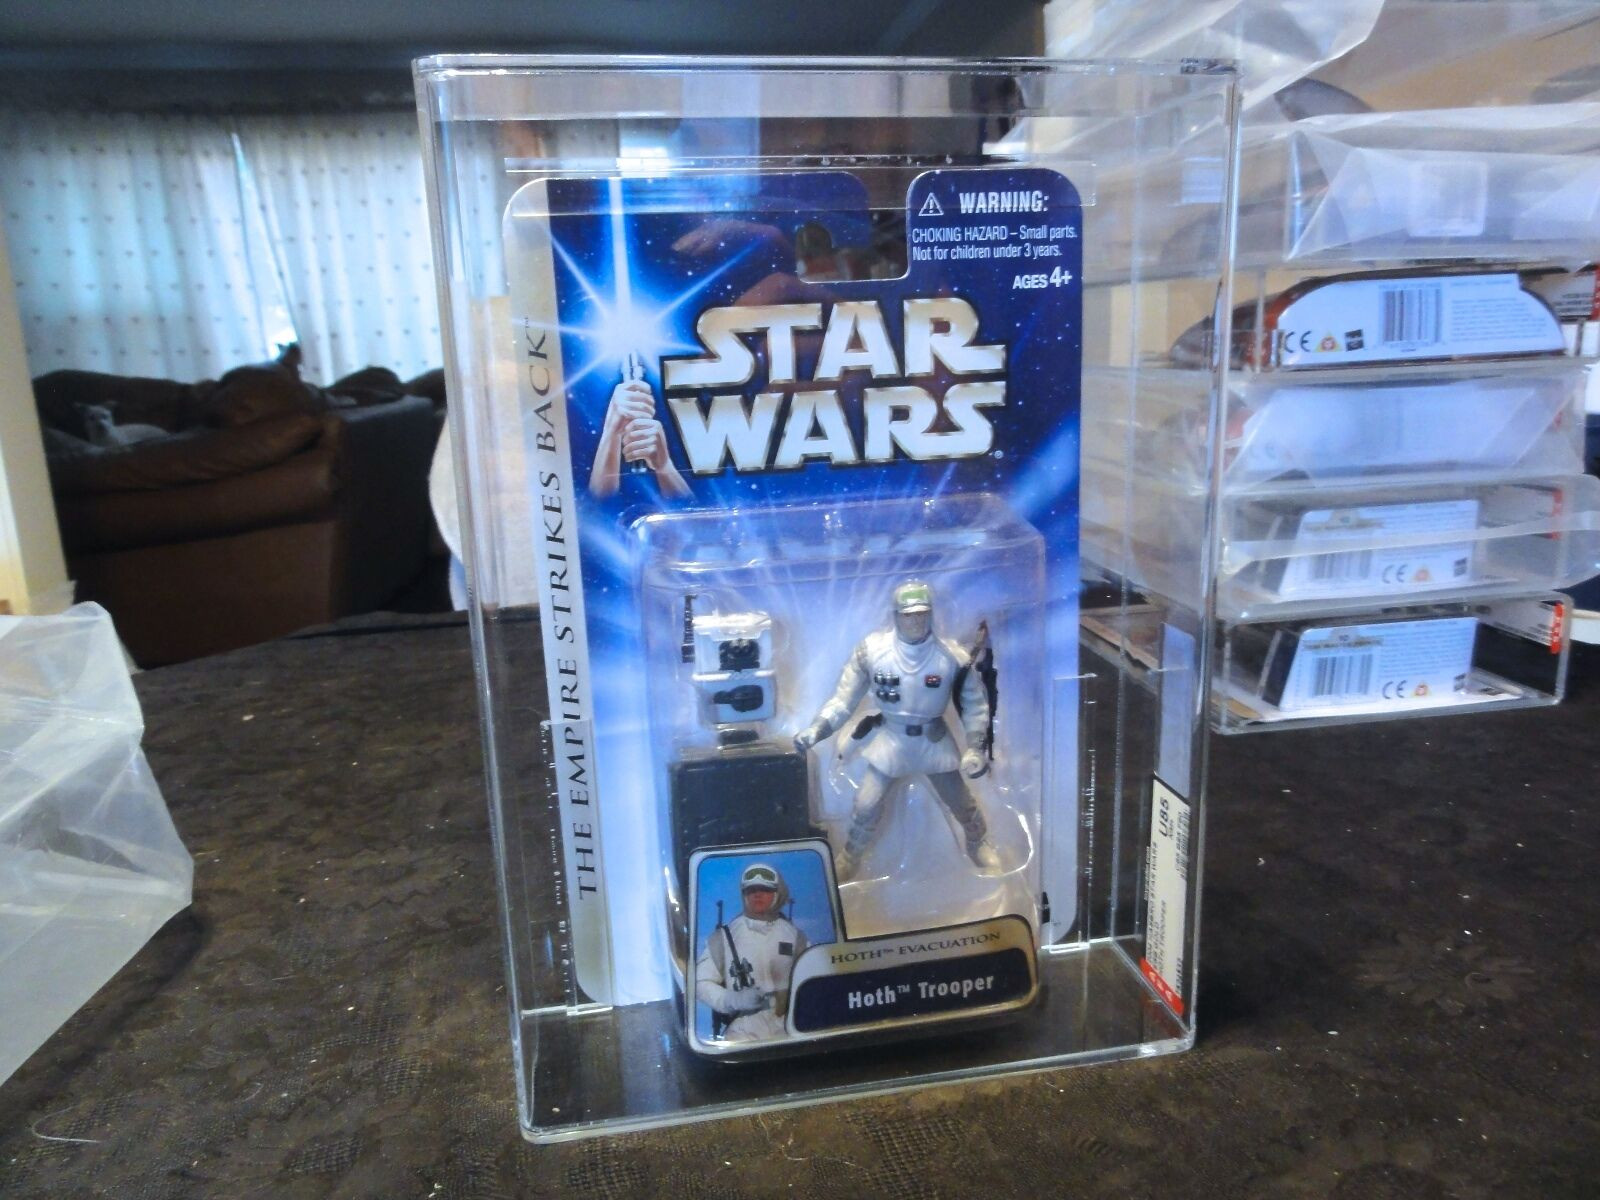 Star Wars 2004 2004 2004 ESB Hoth Trooper AFA Sealed MIB BOX e7f708